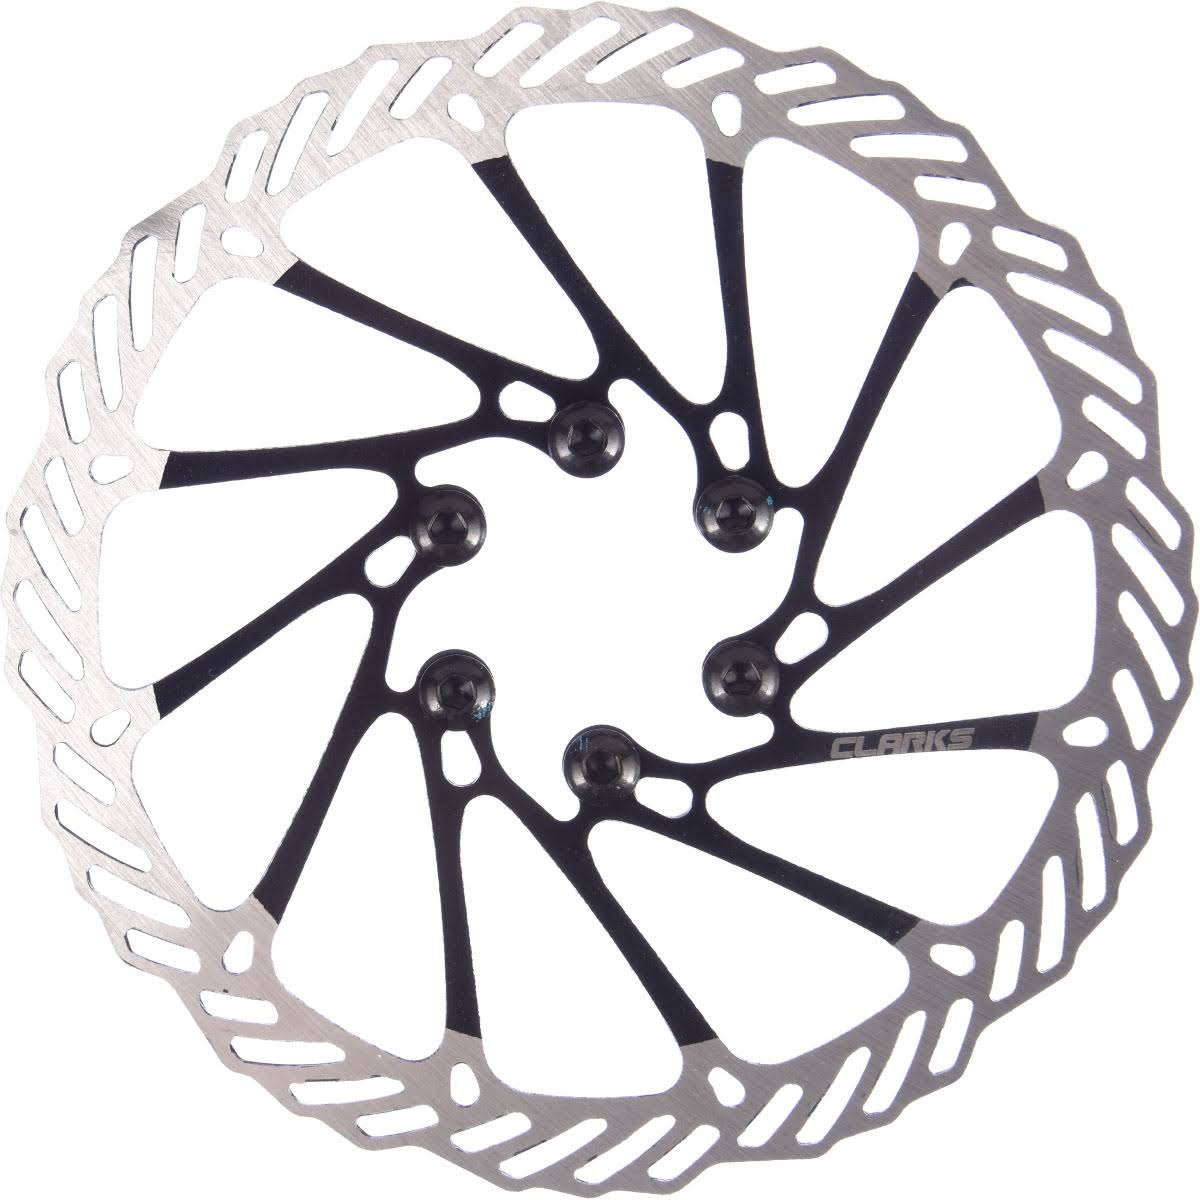 Clarks Brake Disc Rotor - Silver and Black, 6 Bolt, 160mm